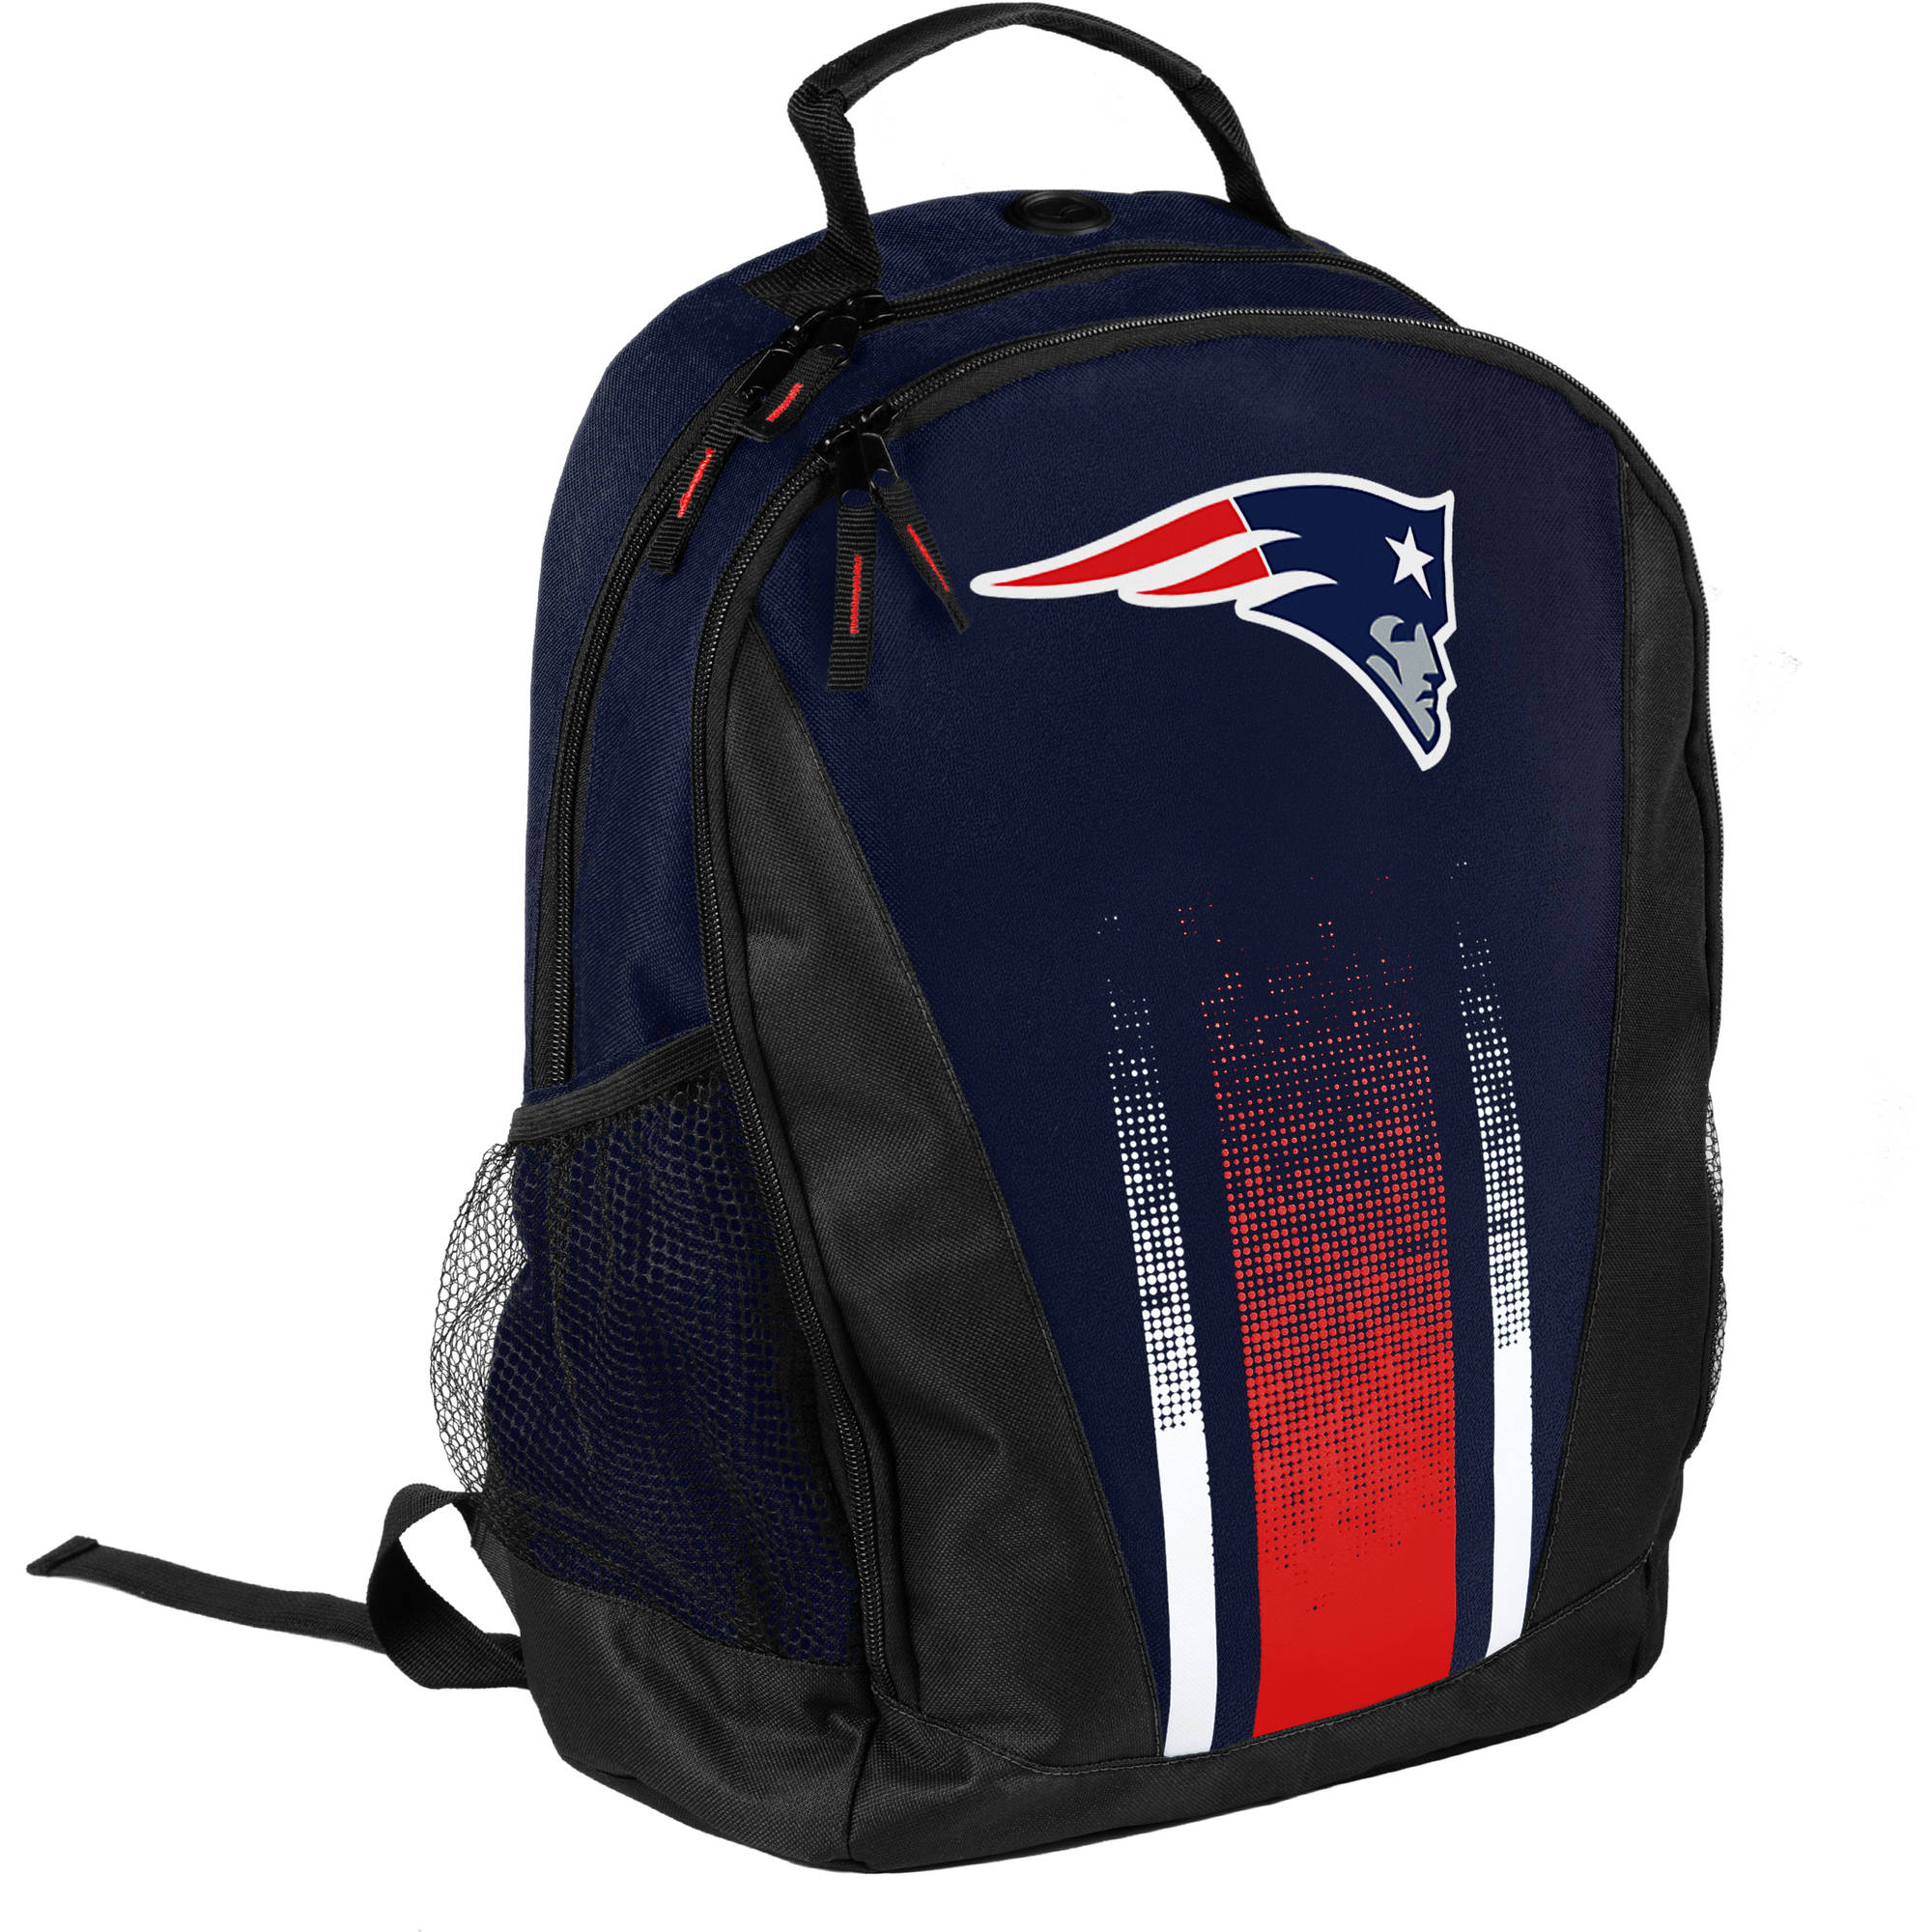 Forever Collectibles NFL New England Patriots Prime Backpack